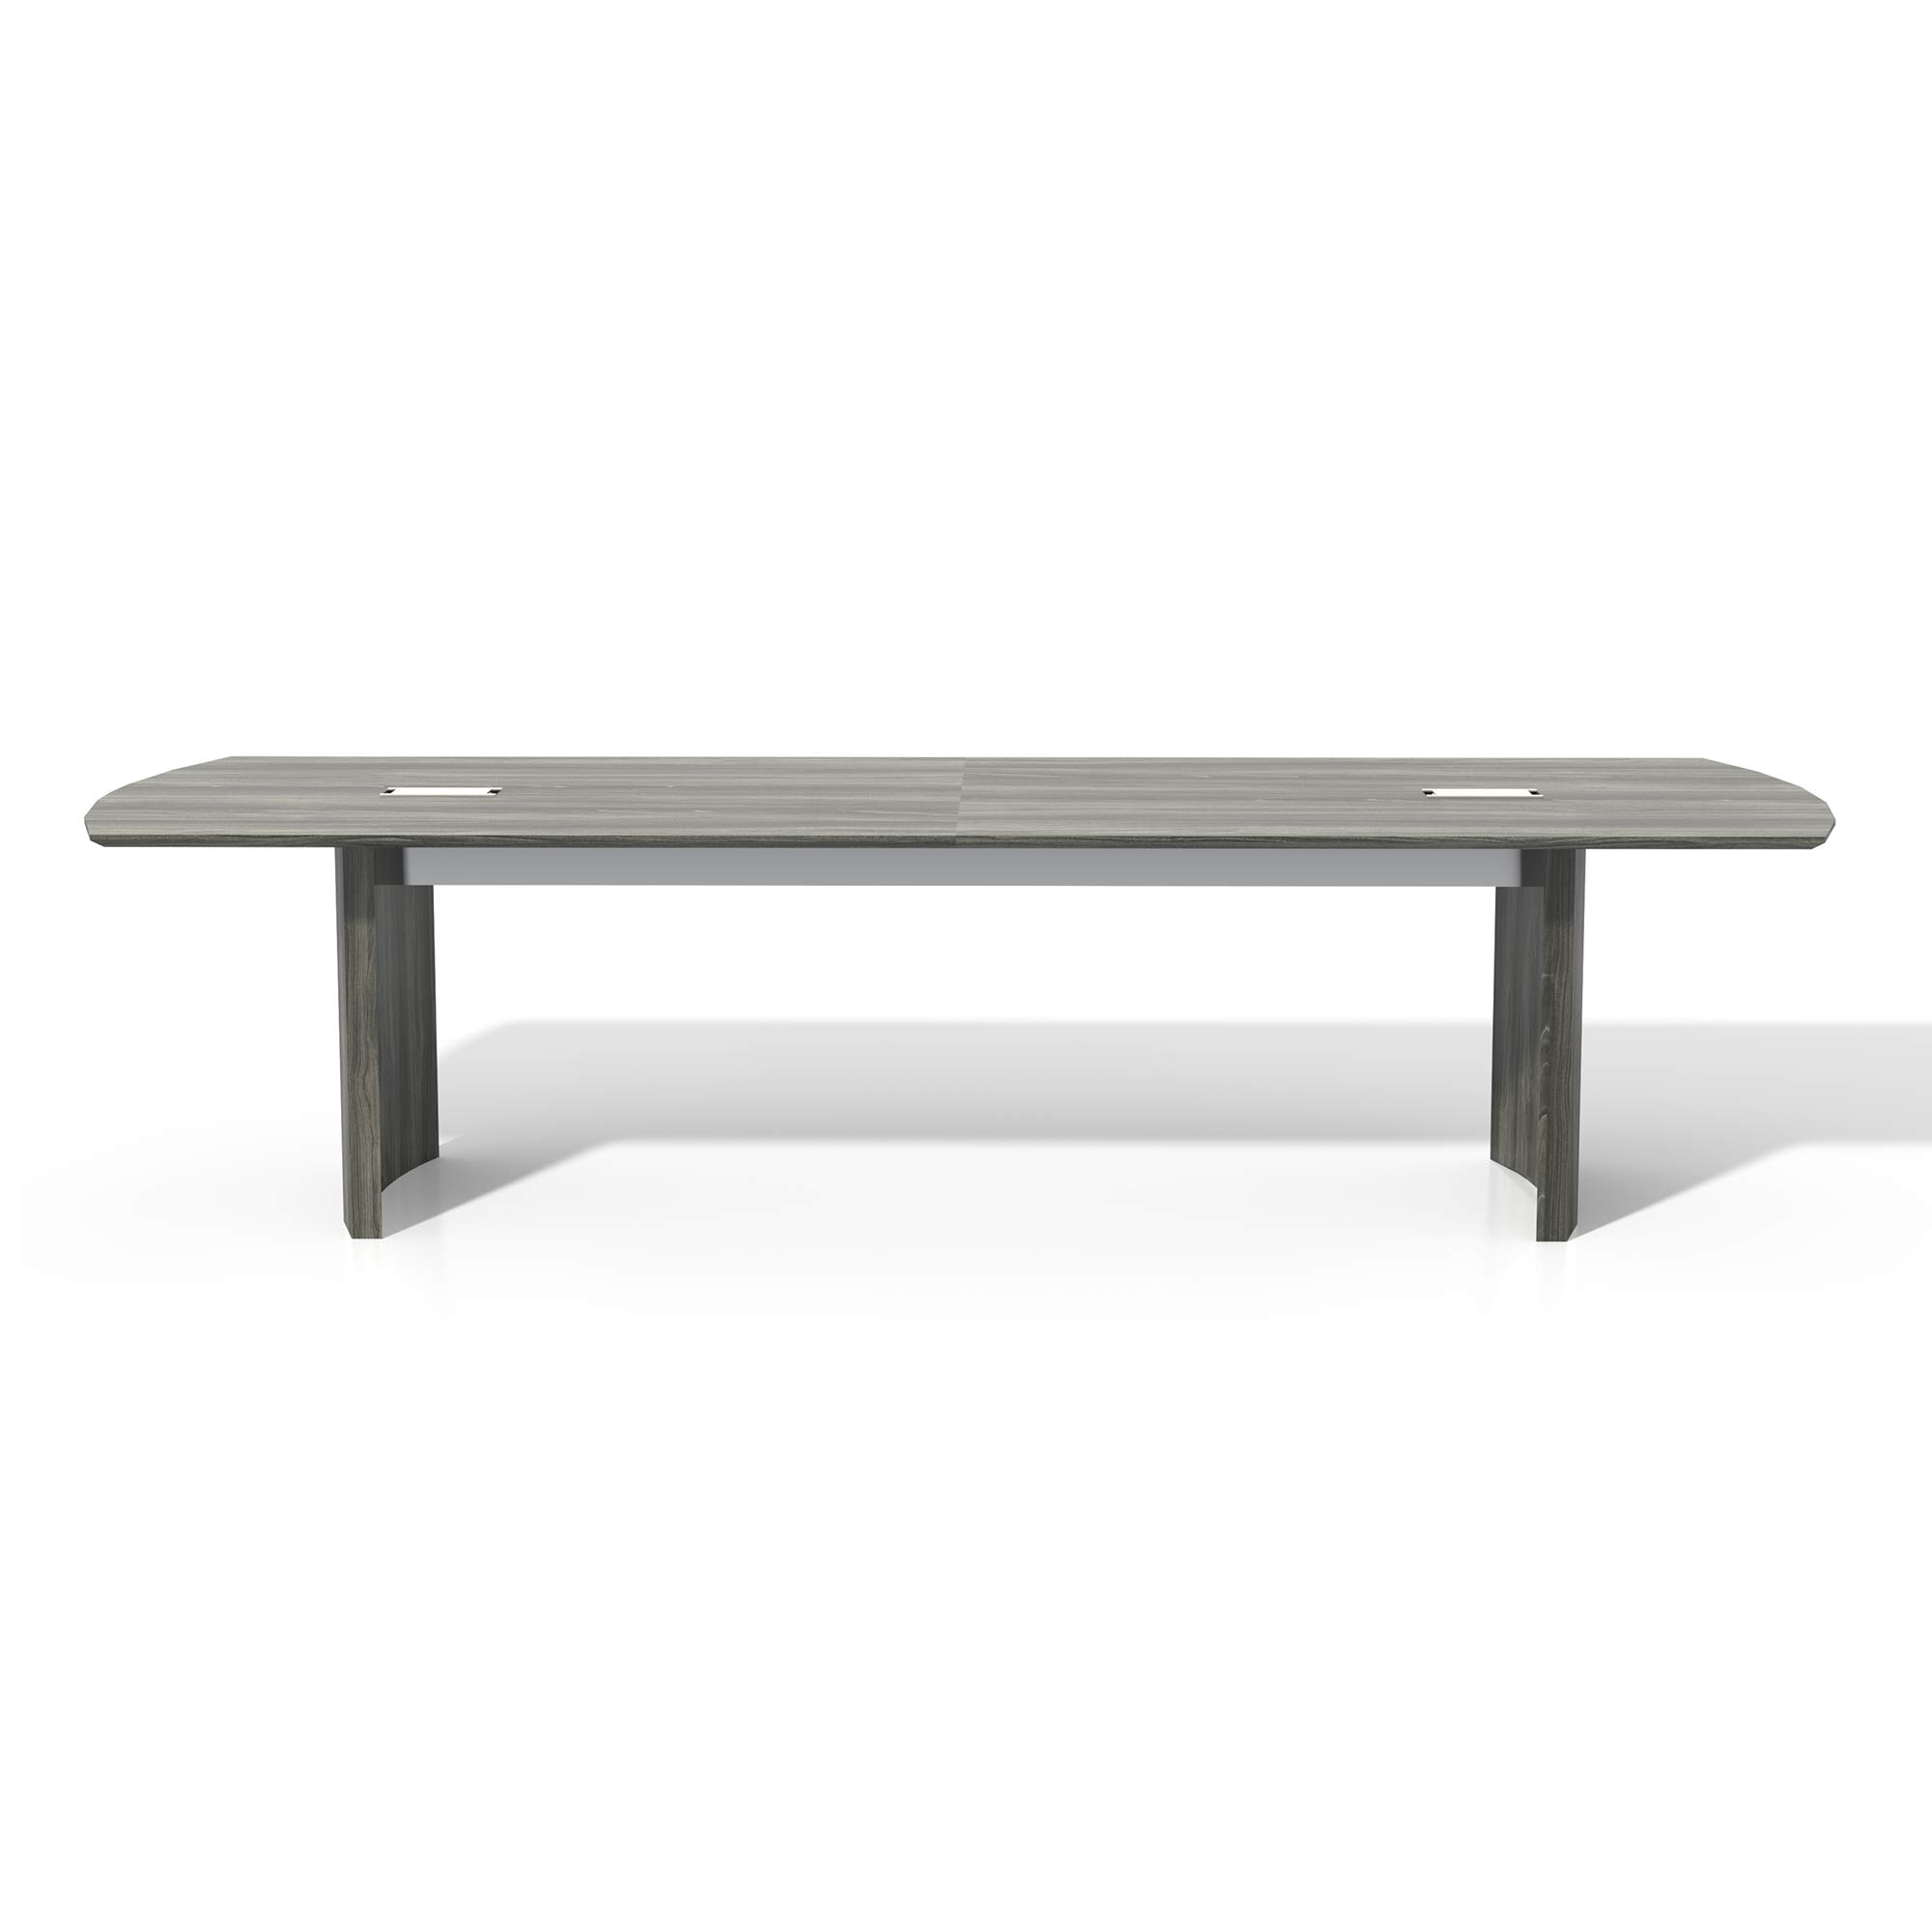 Safco Products MNC10LGS Medina Table 10' Gray Steel by Safco Products (Image #2)